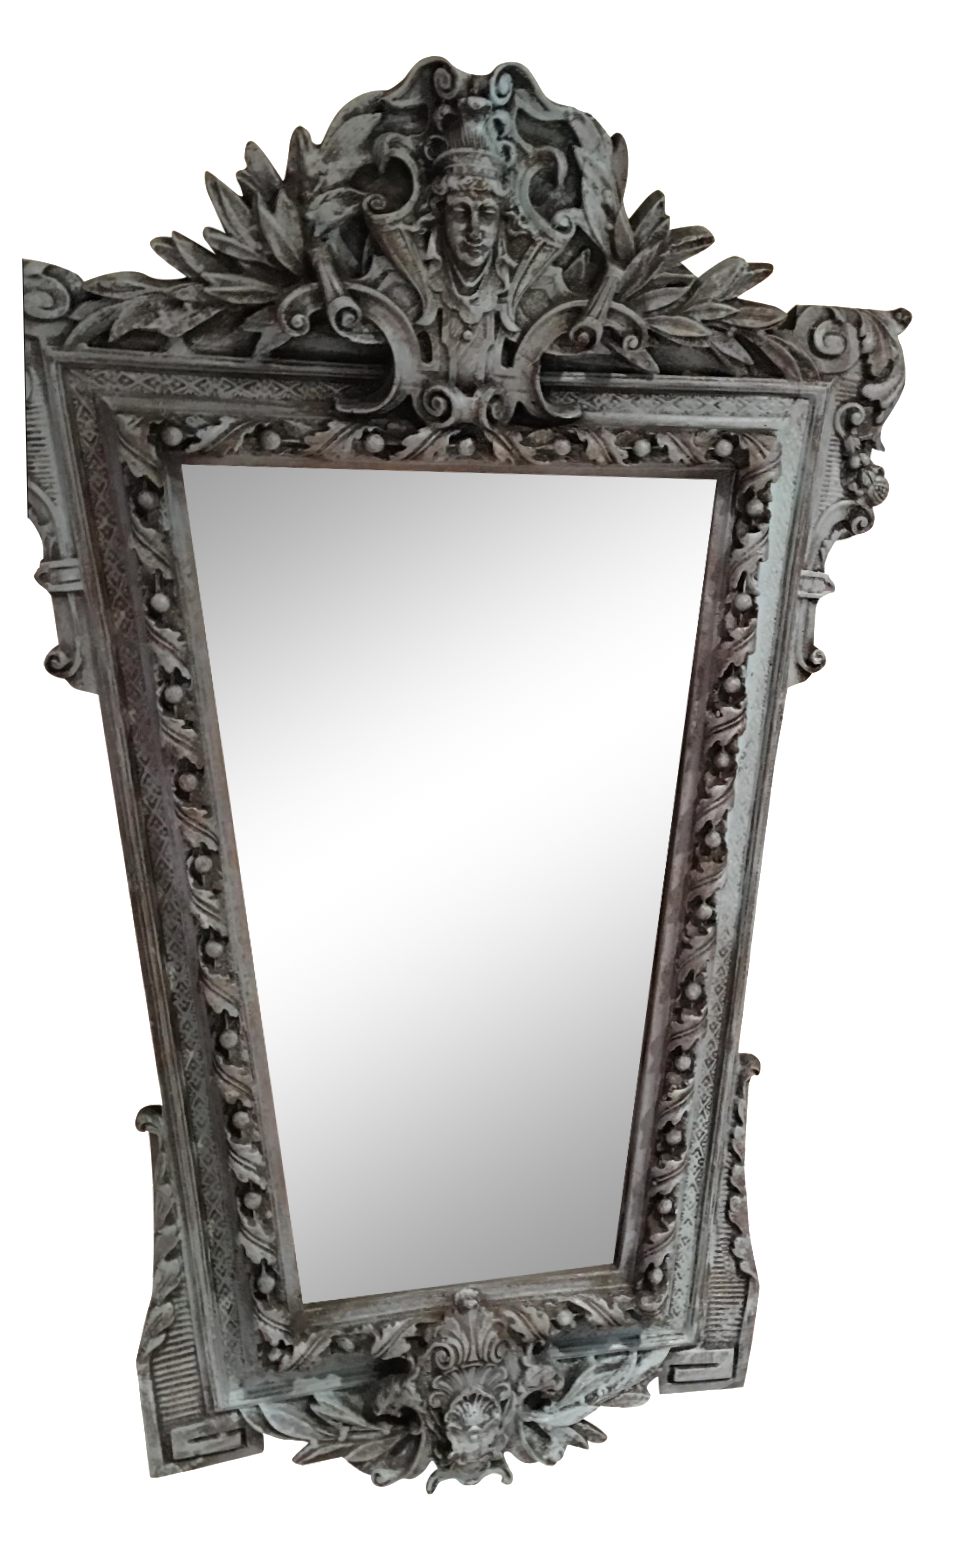 freeuse library Vintage Gothic Mirror